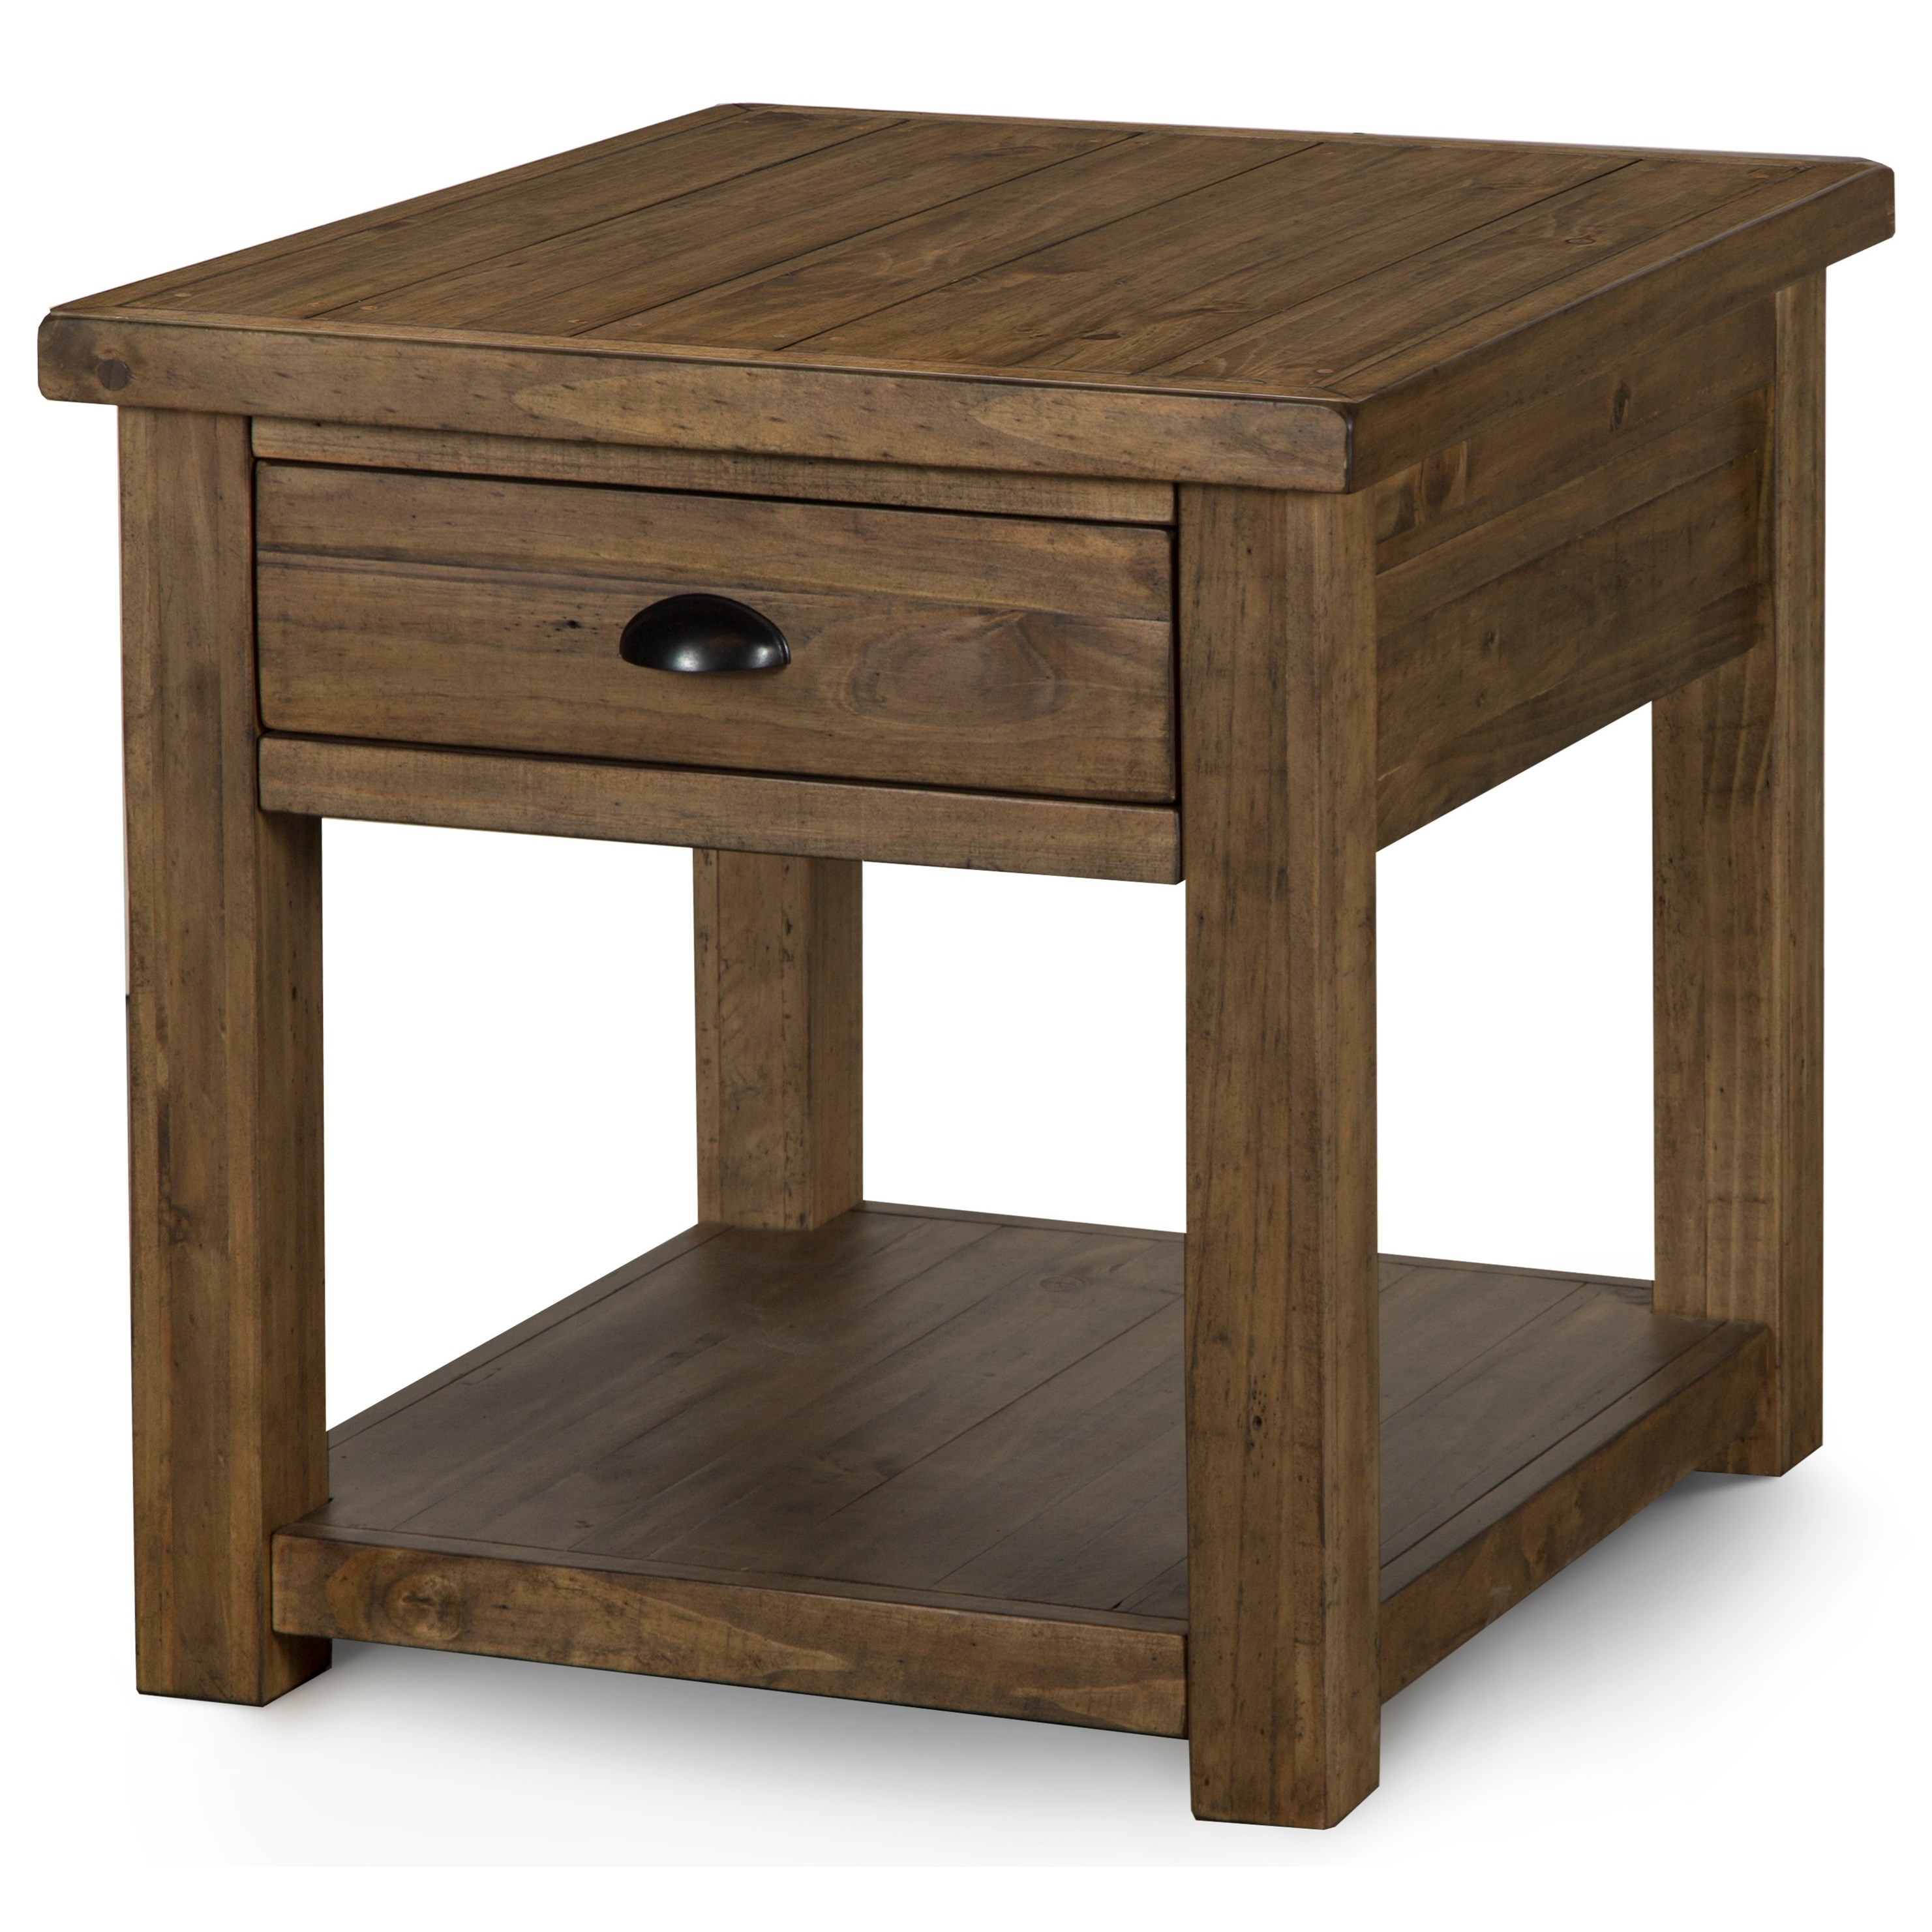 Stratton Rectangular End Table by Magnussen Home at Johnny Janosik